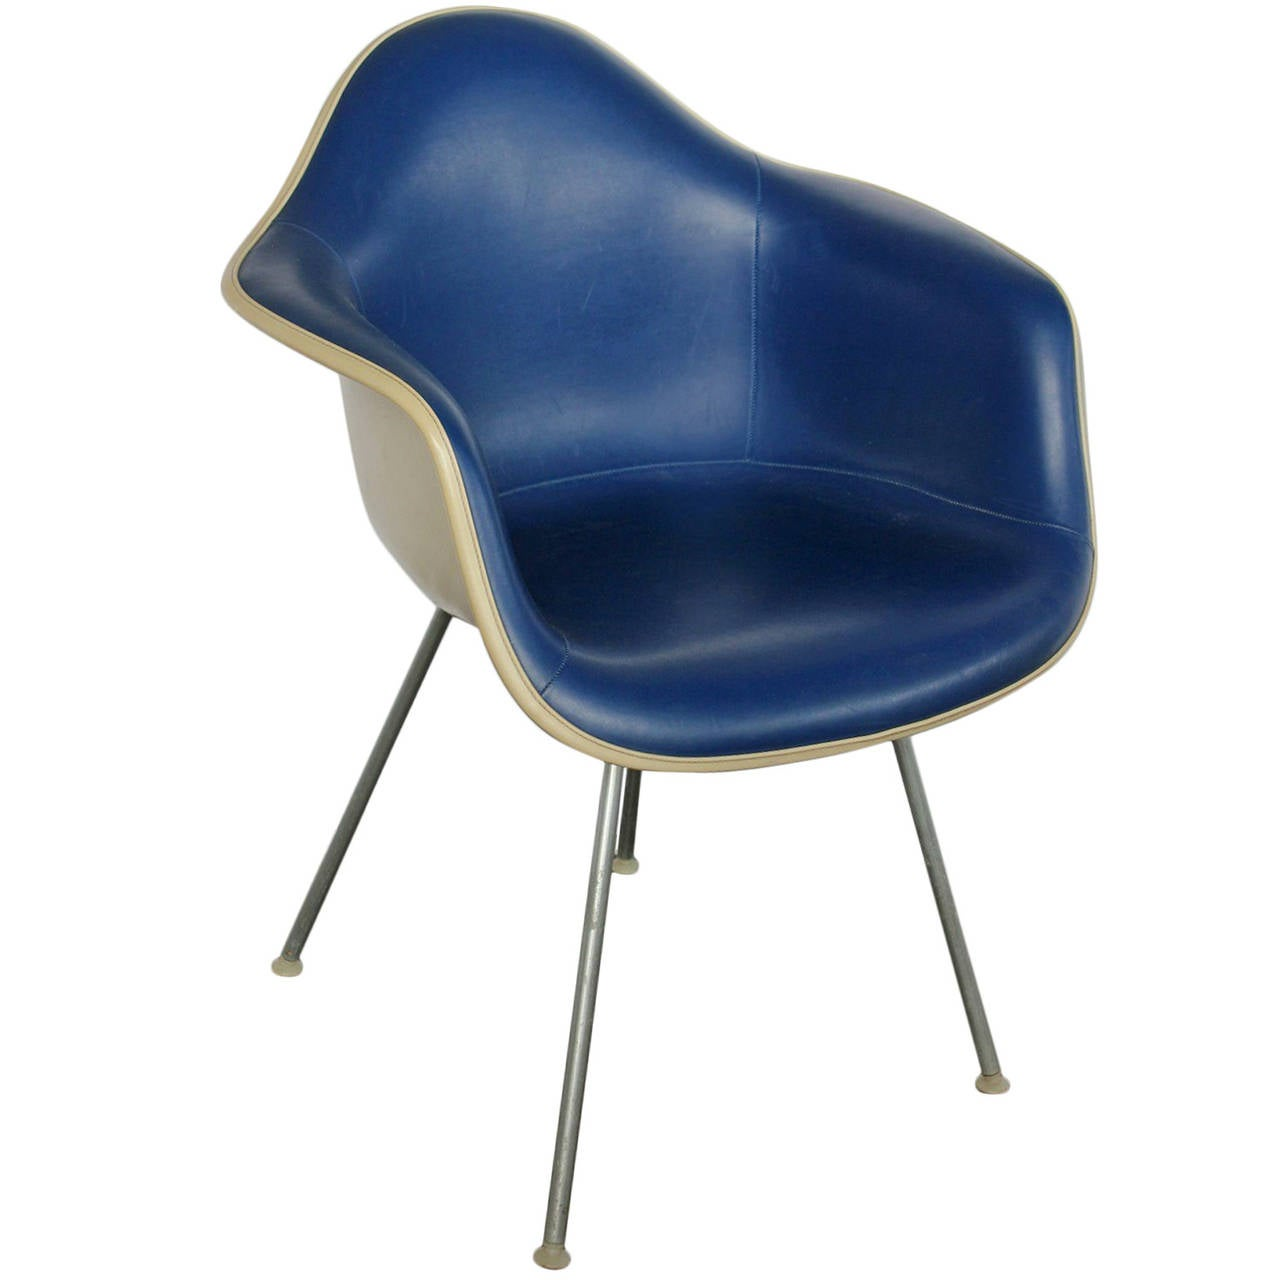 Charles Eames Lounge Chair Blue Naugahyde Chair By Charles And Ray Eames For Herman